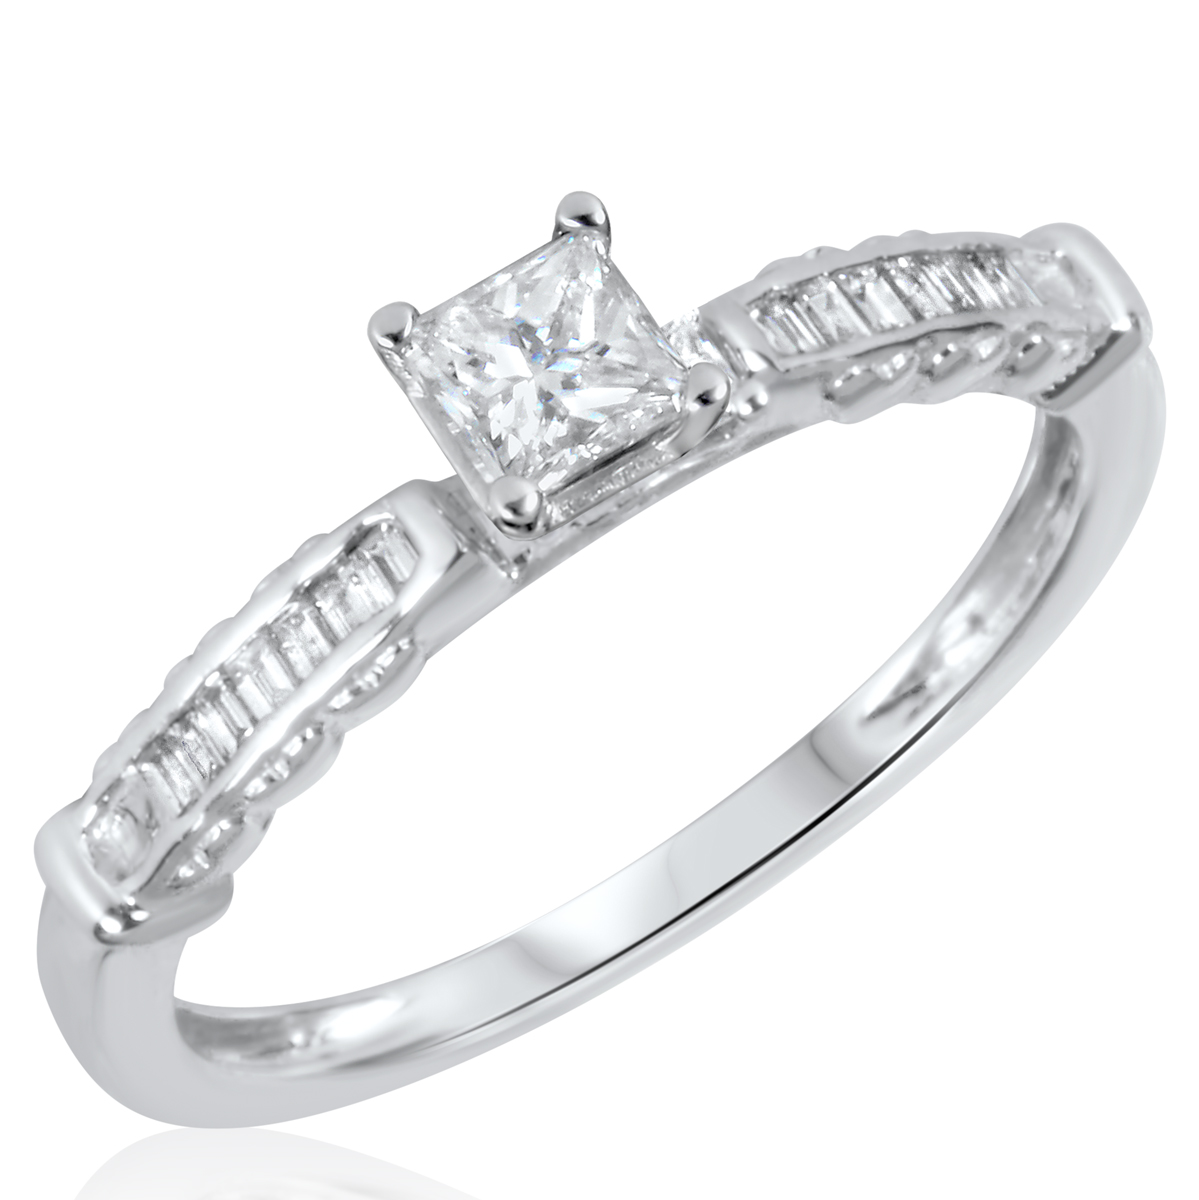 1/2 CT. T.W. Diamond Ladies Engagement Ring 14K White Gold- Size 8